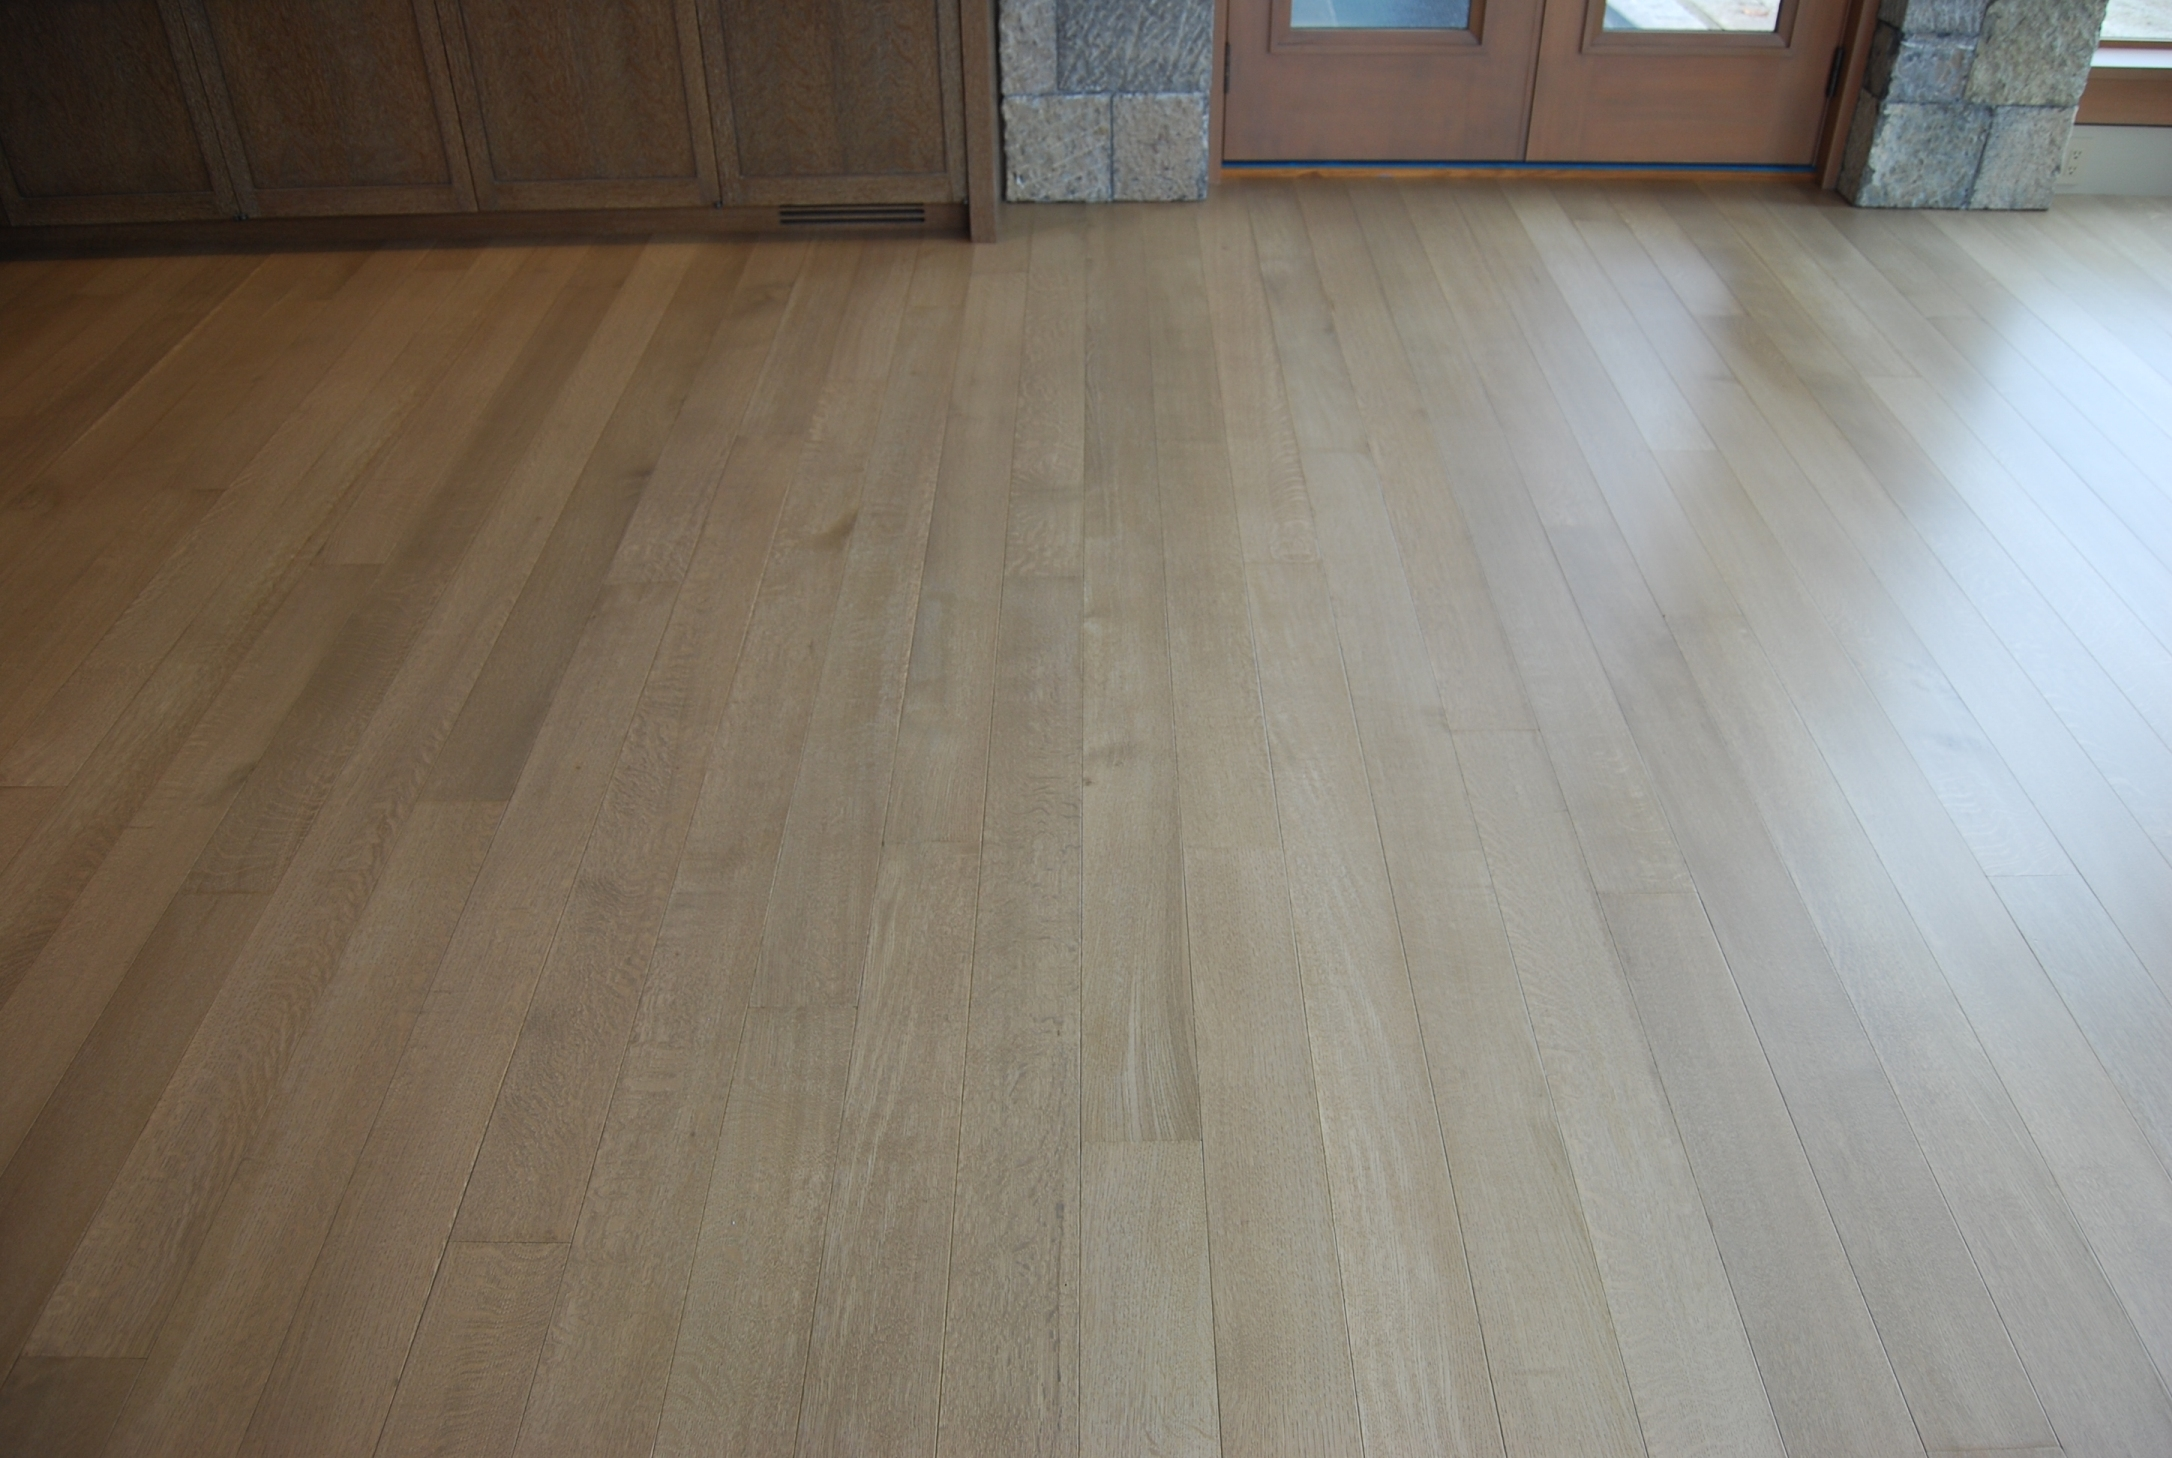 Bleached Maple Wood Floors